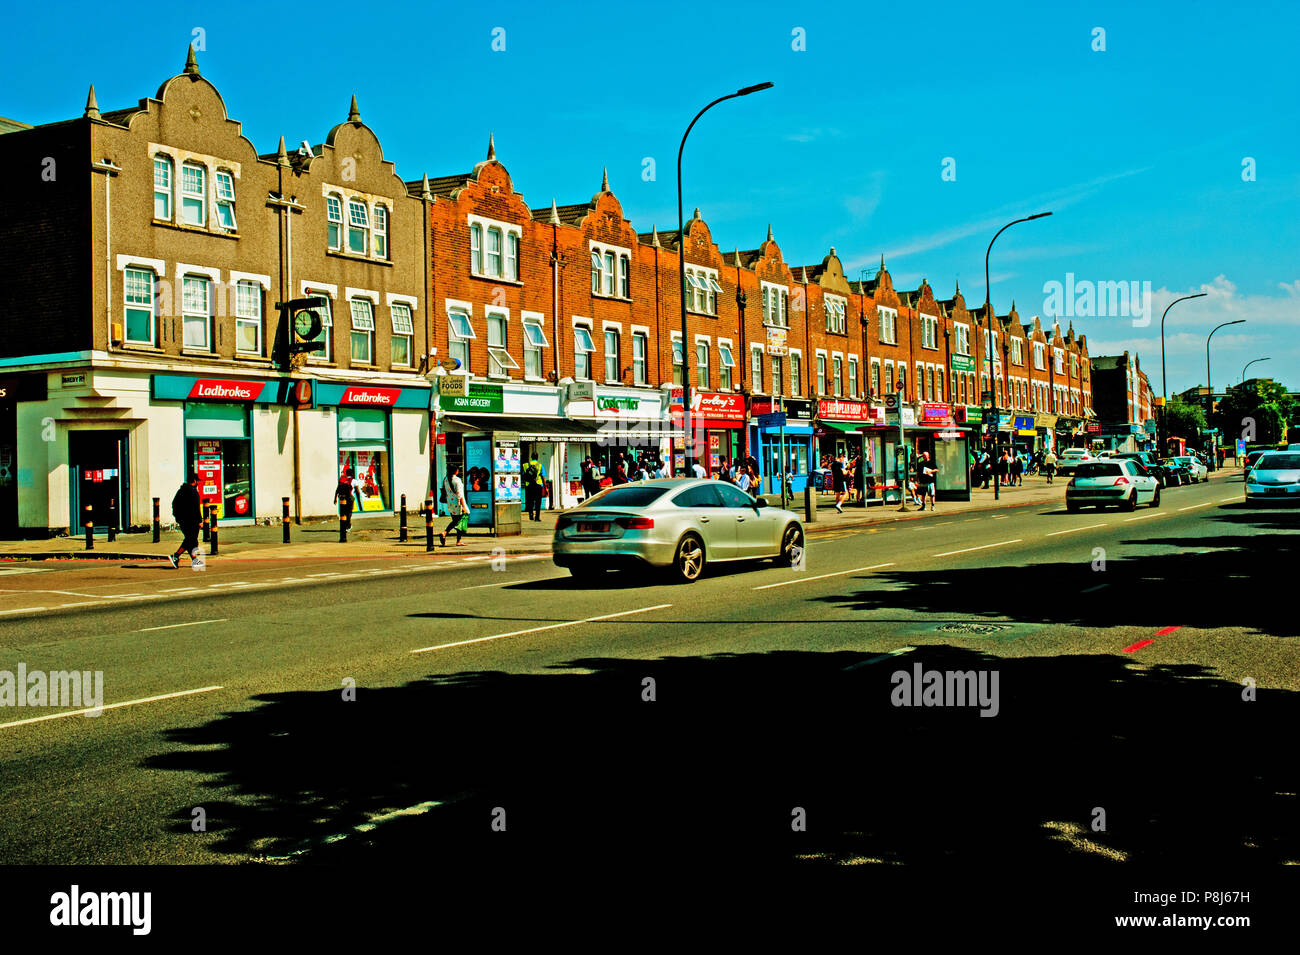 Shops in Bromley Road, Catford, Borough of Lewisham, London - Stock Image